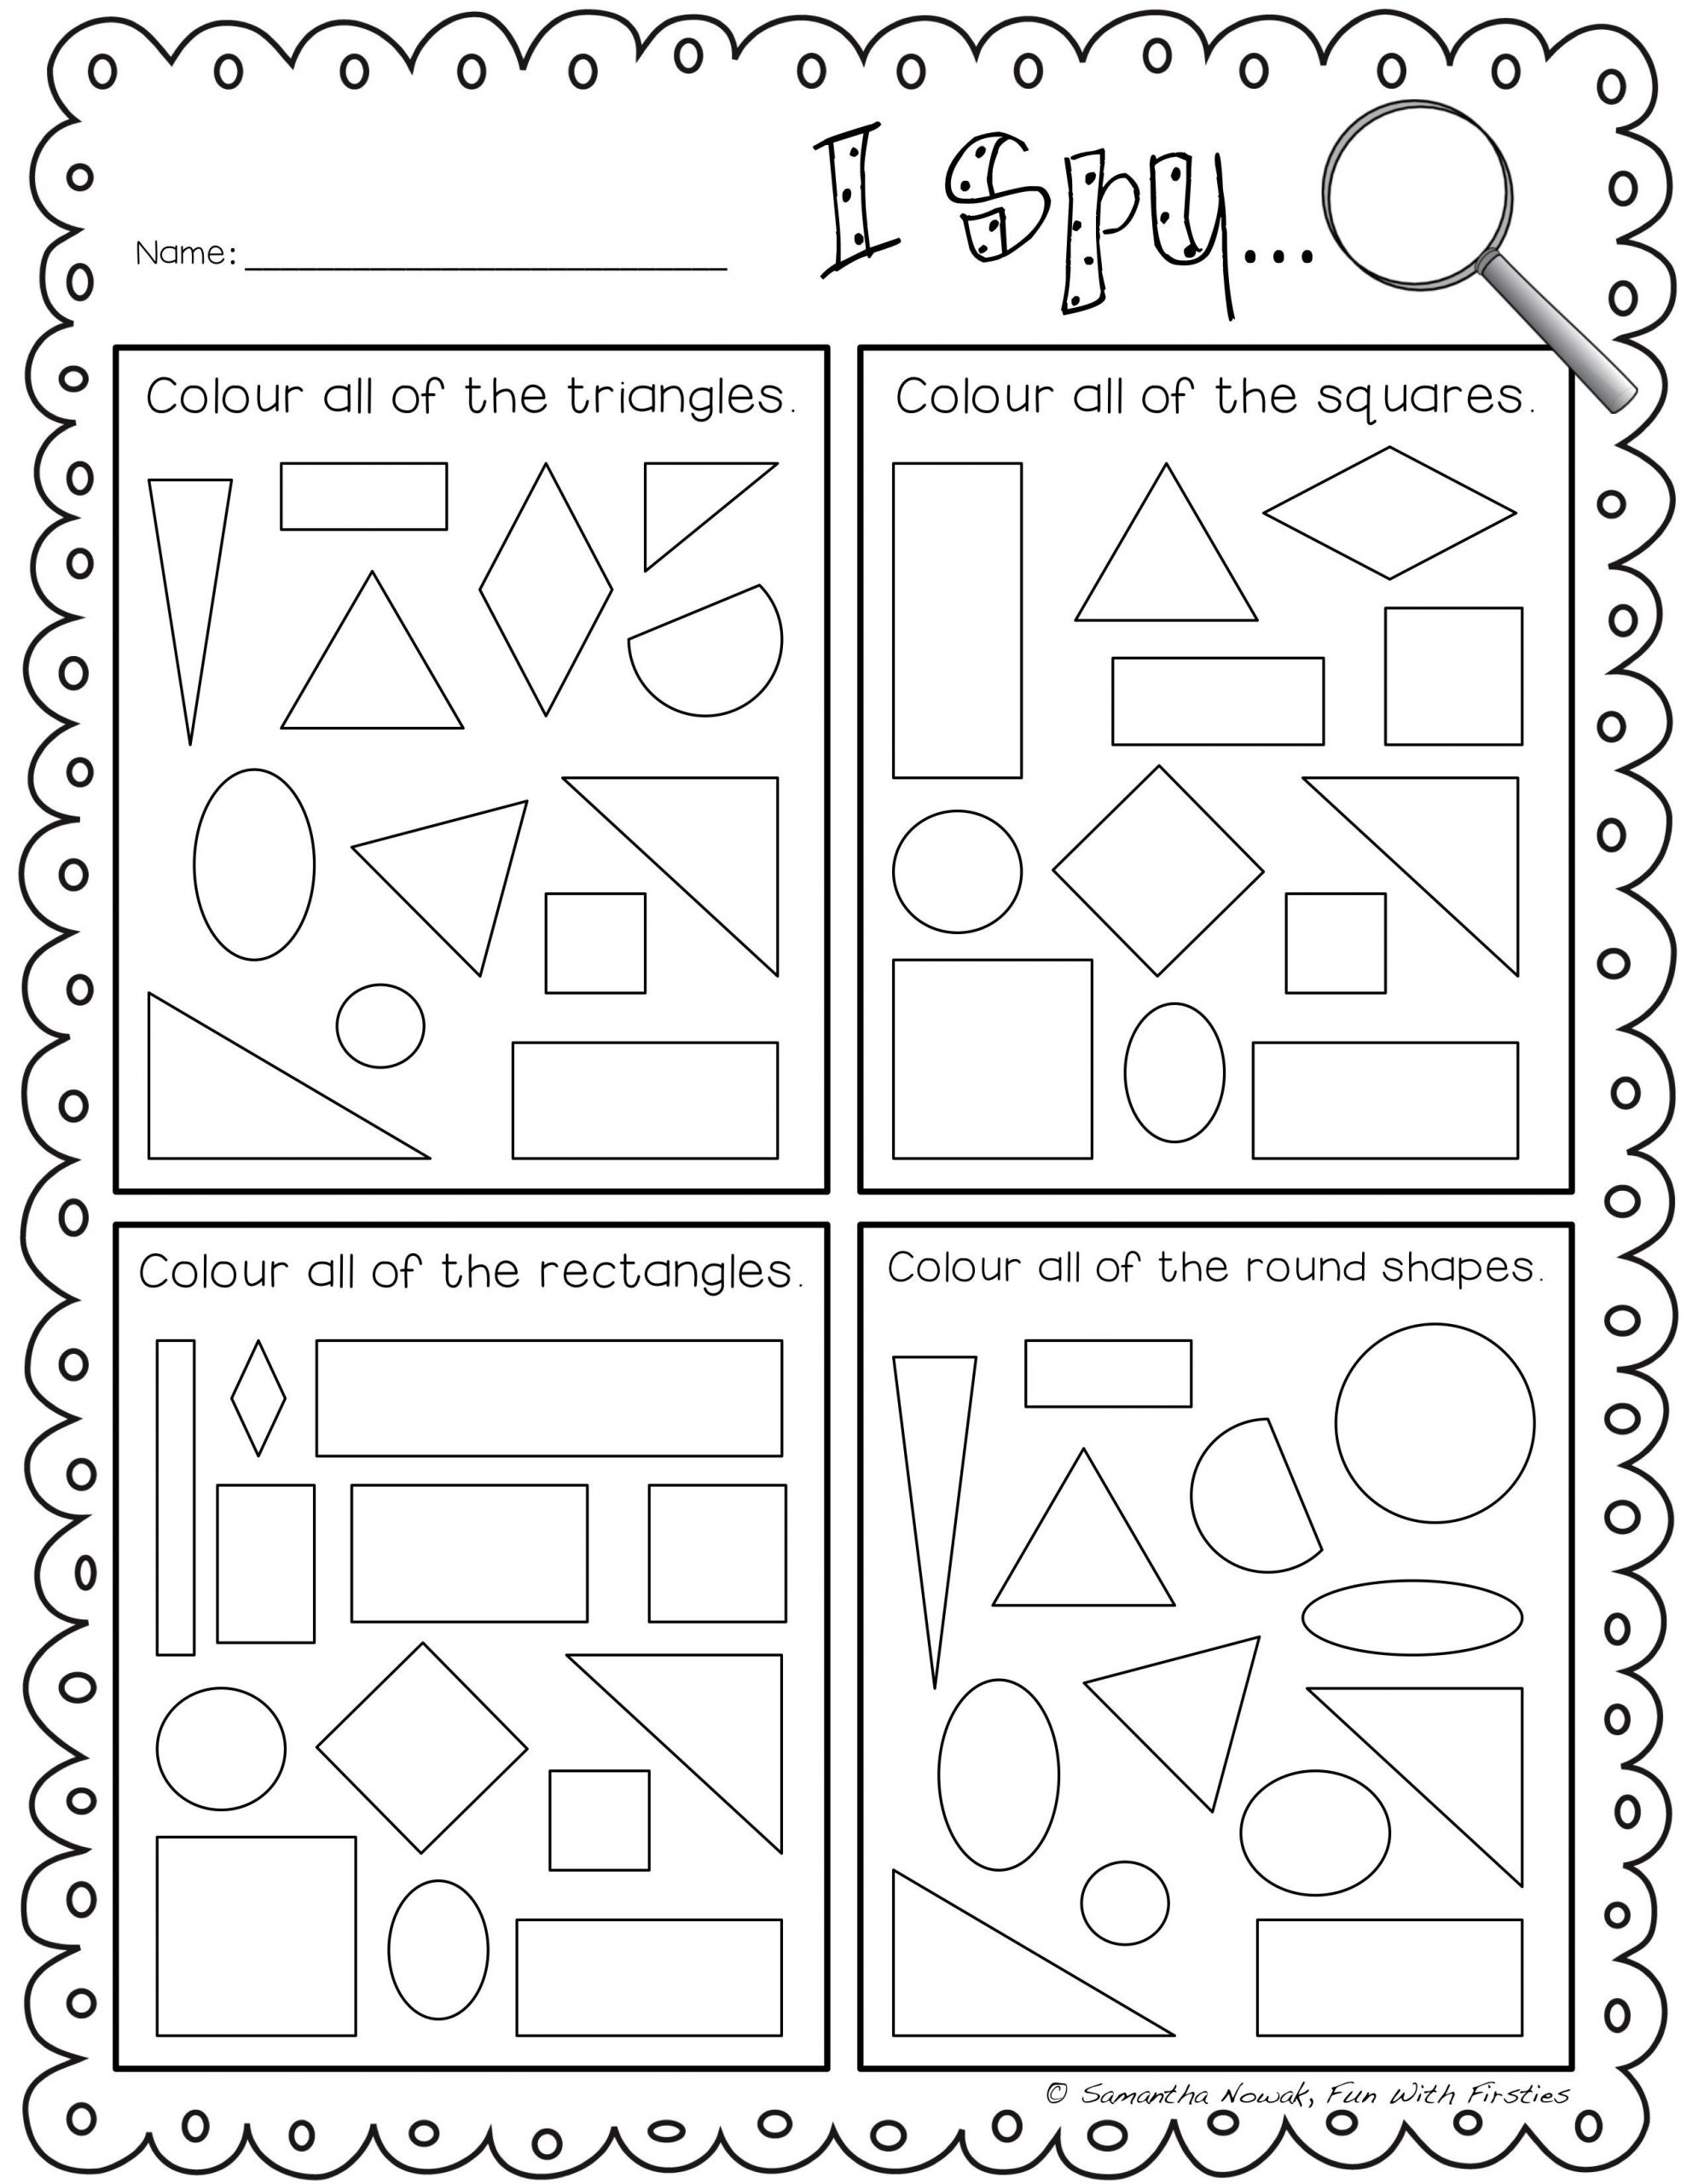 Geometric Shapes Worksheet 2nd Grade I Spy 2d Geometry Shapes Lour to Practice Identifying